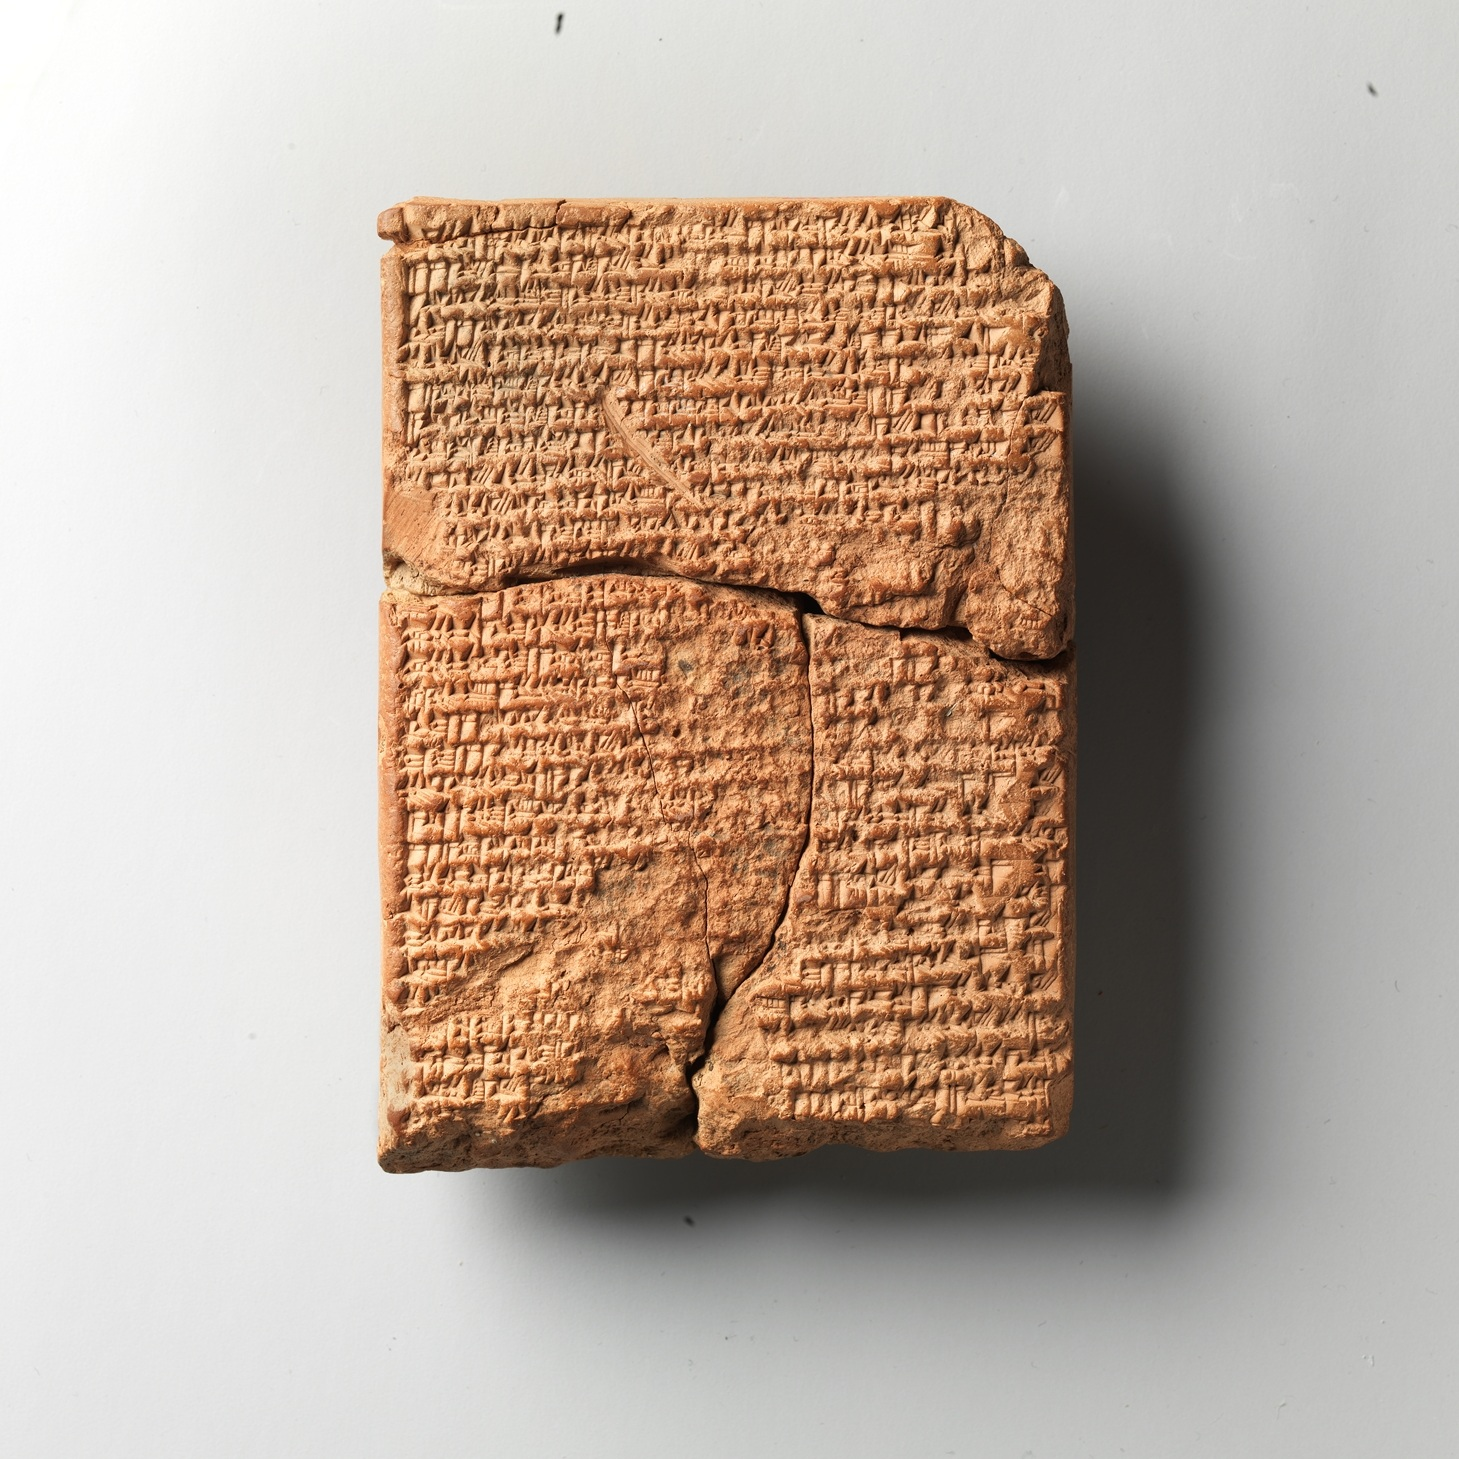 I used a GAN (General Adversarial Network) for this project: to learn cuneiform, it abstracts pixel-data of the items in the tablet-corpus. After that it is able to generate new tablets on its own.